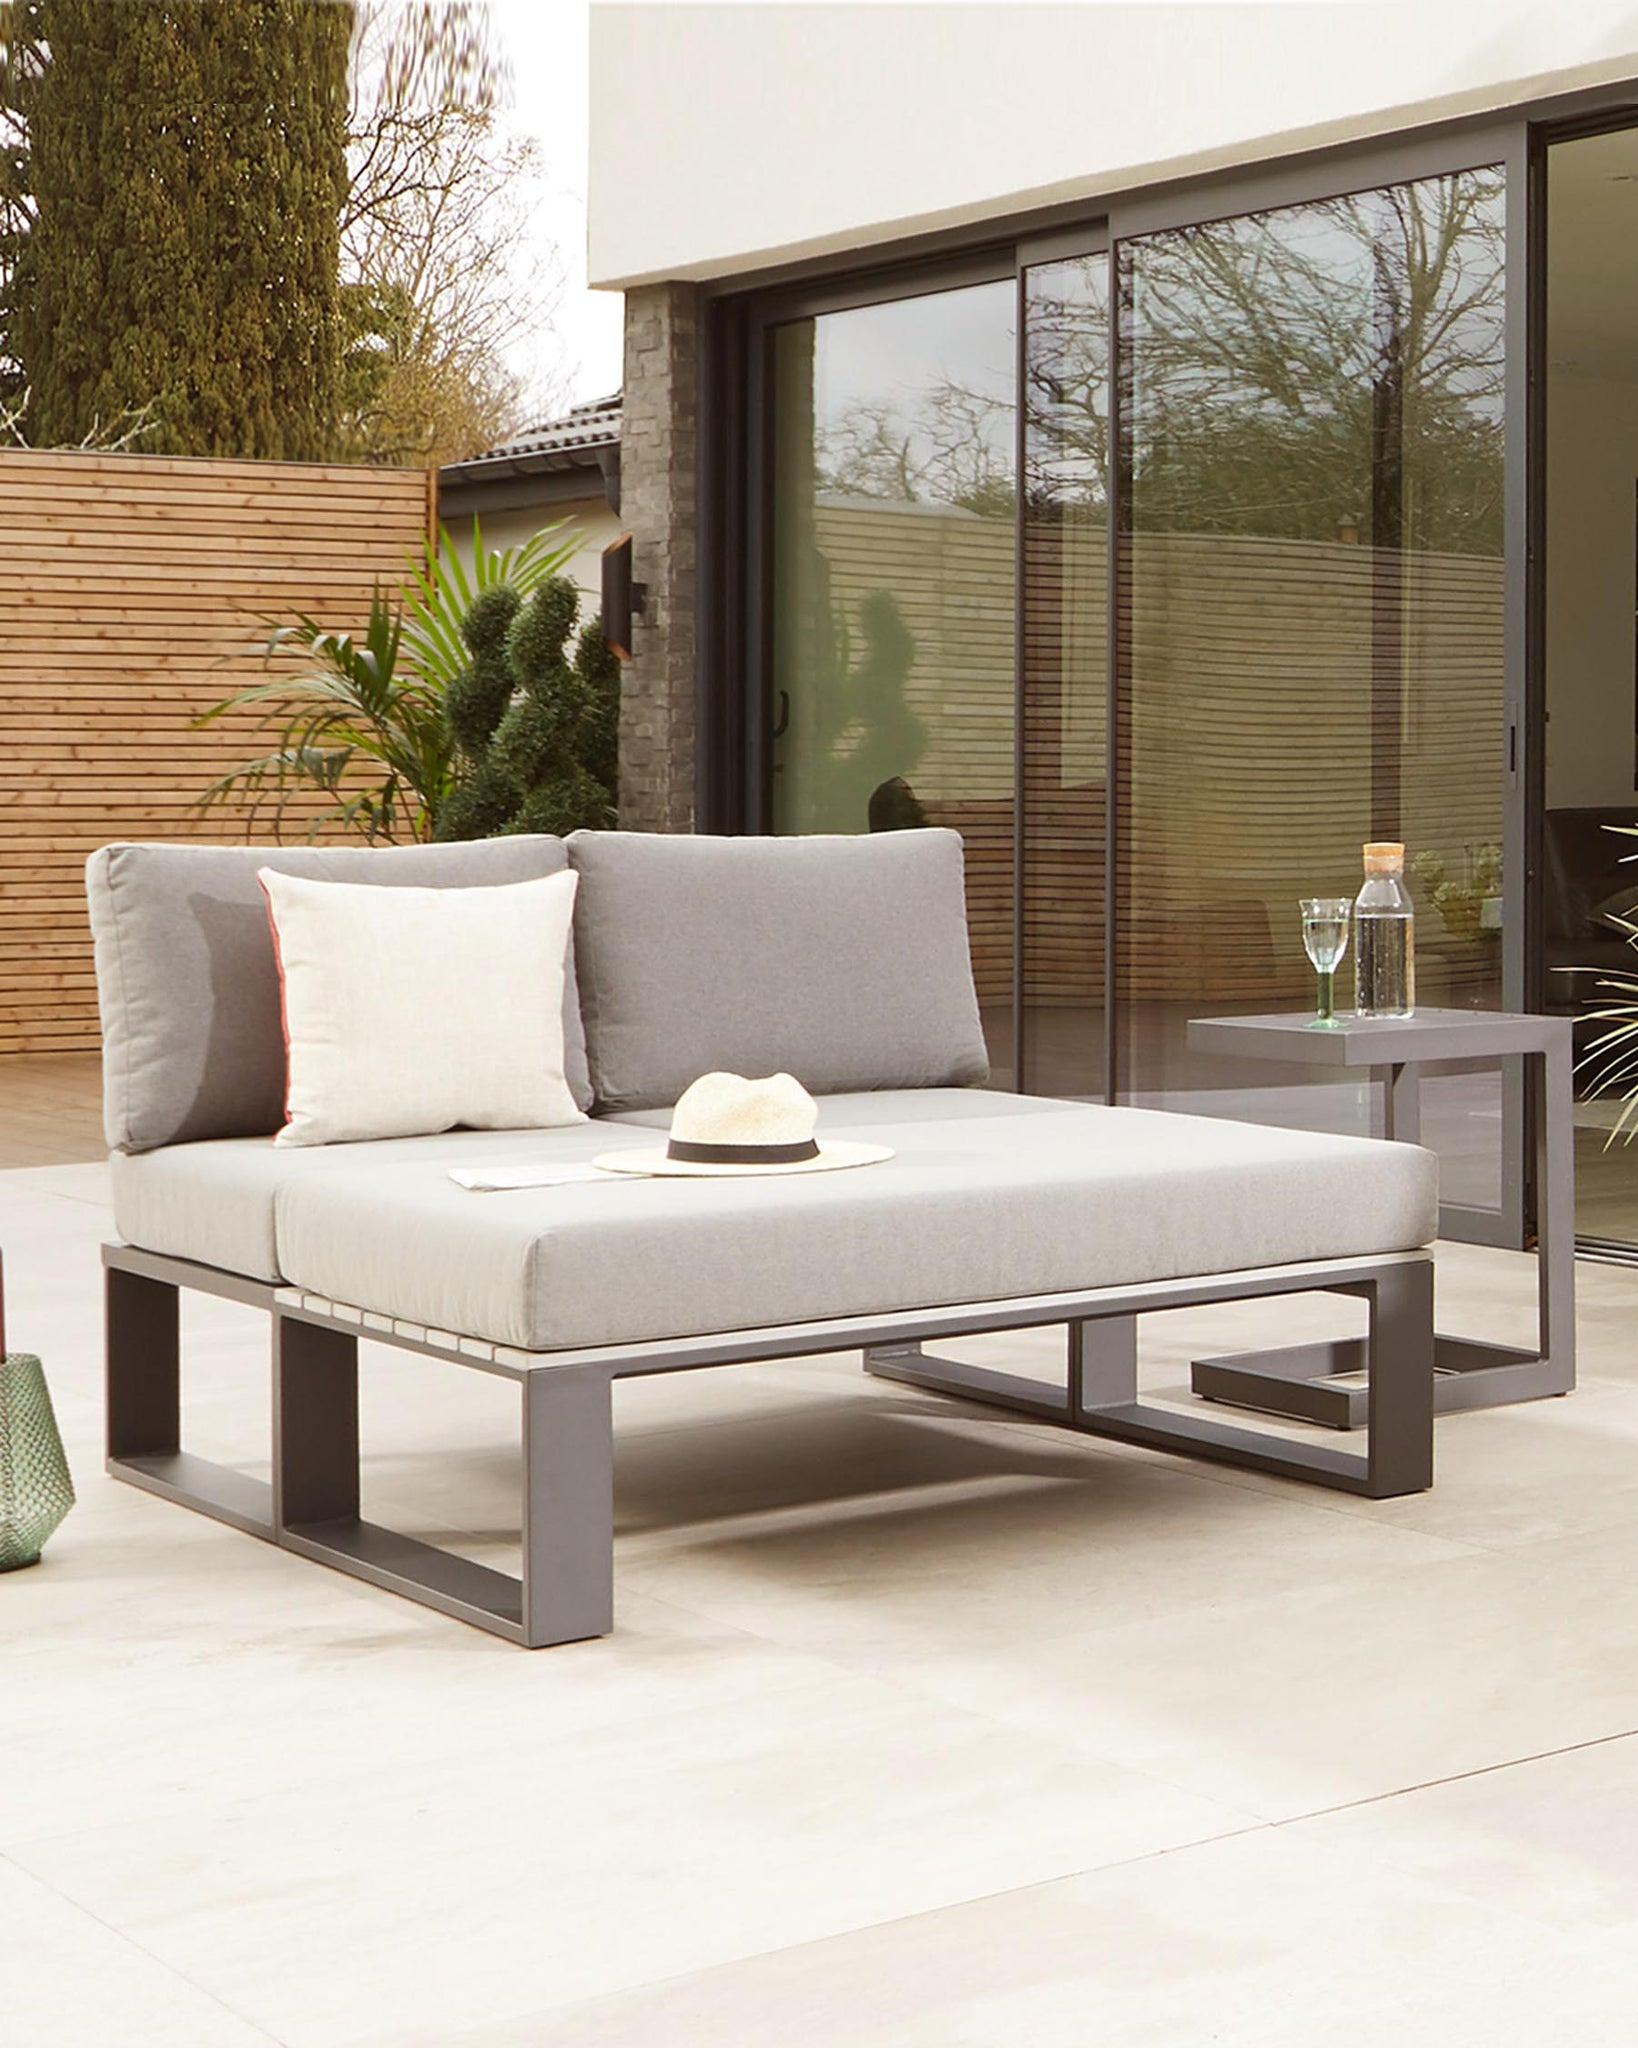 Savannah Grey Daybed Garden Set